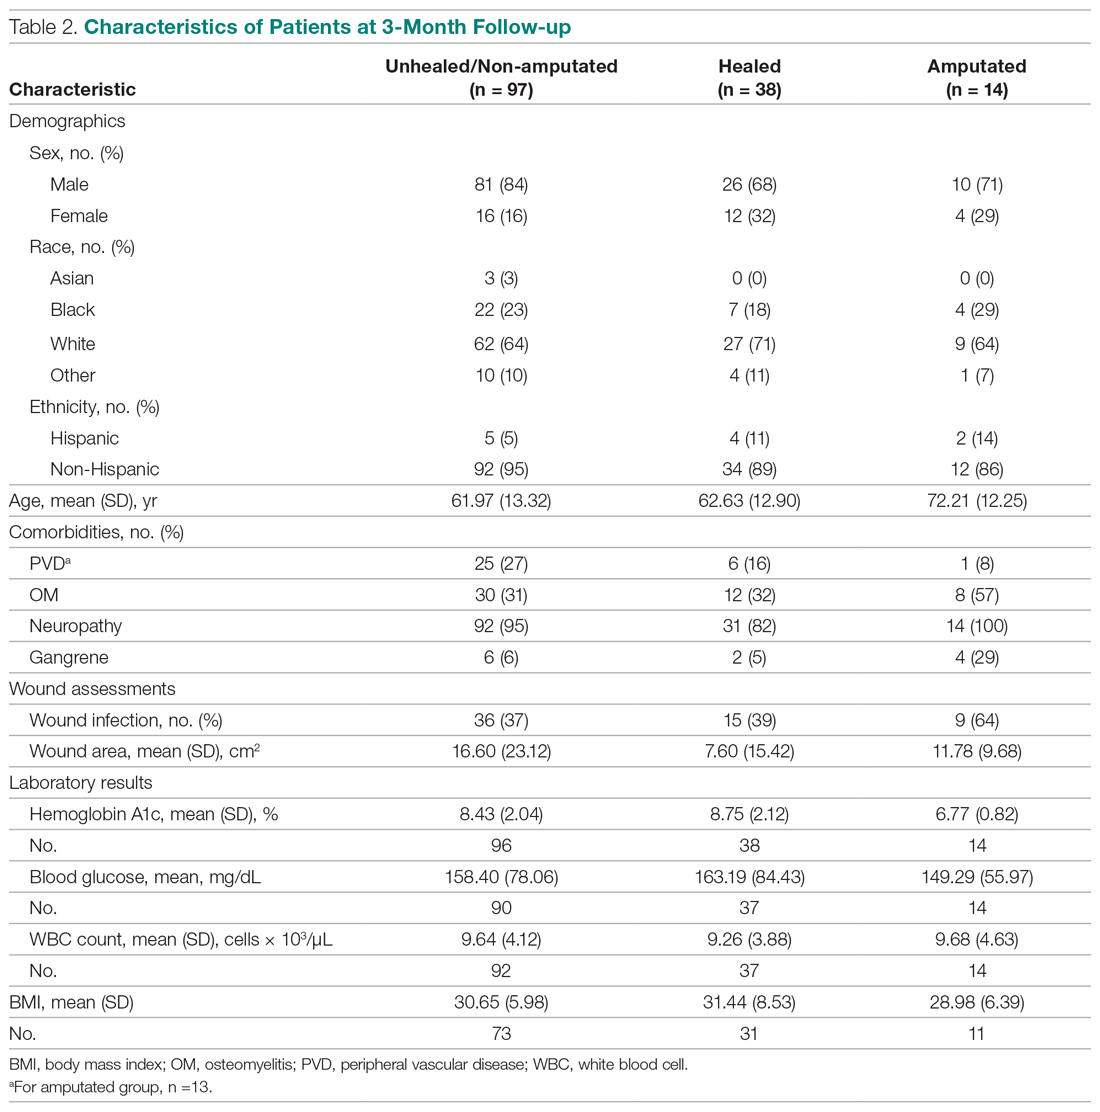 Characteristics of Patients at 3-Month Follow-up